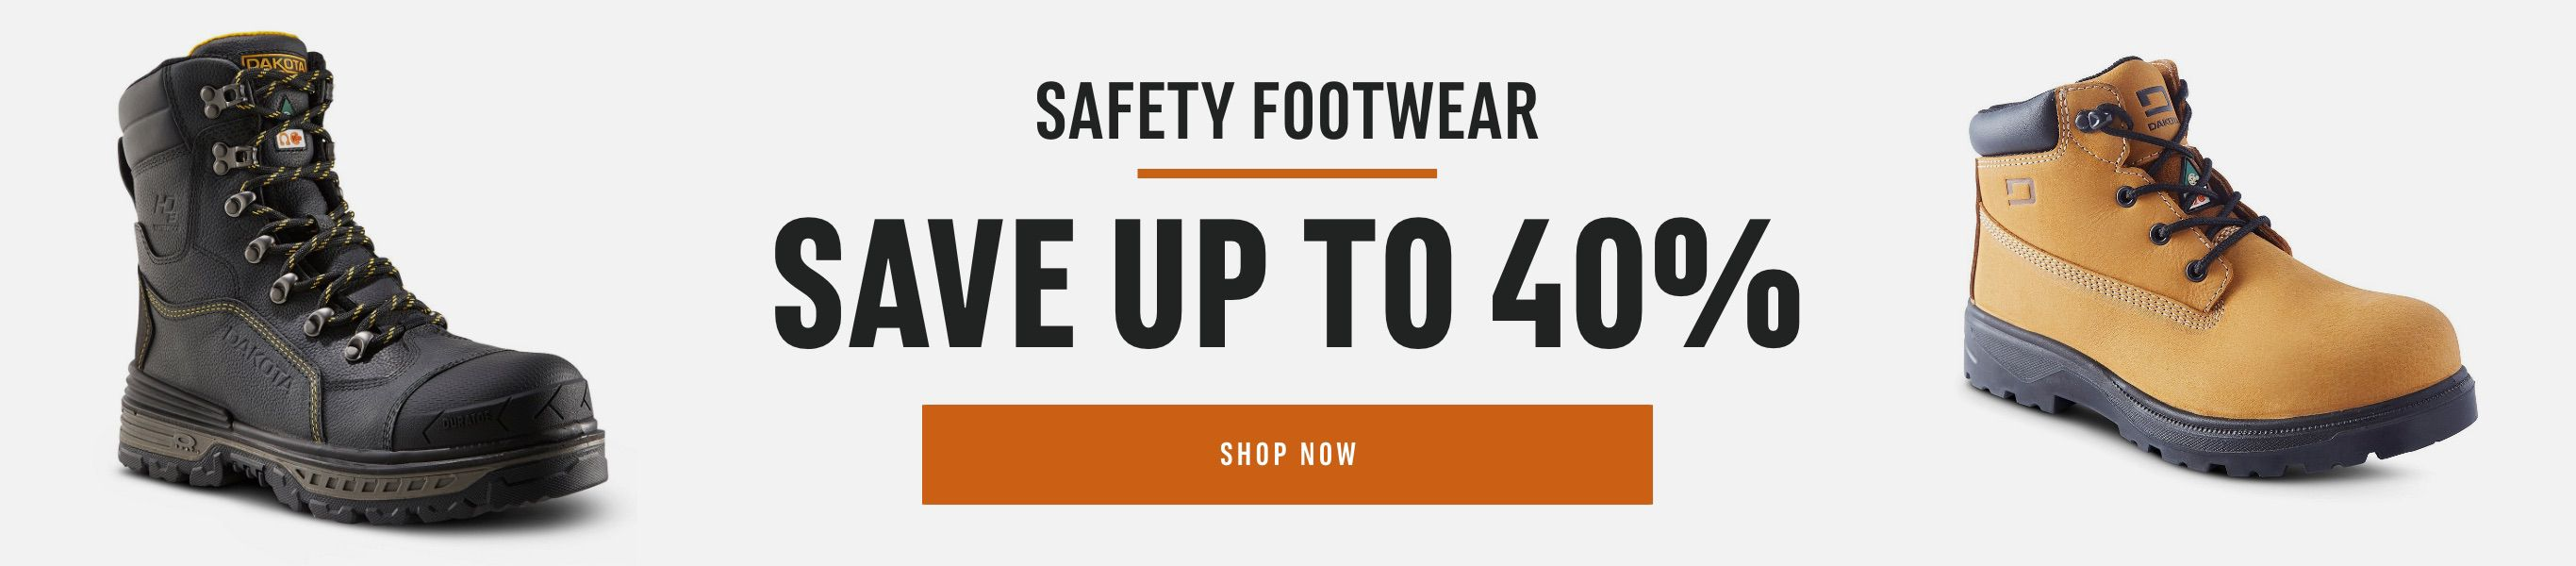 Safety Footwear: Save up to 40%